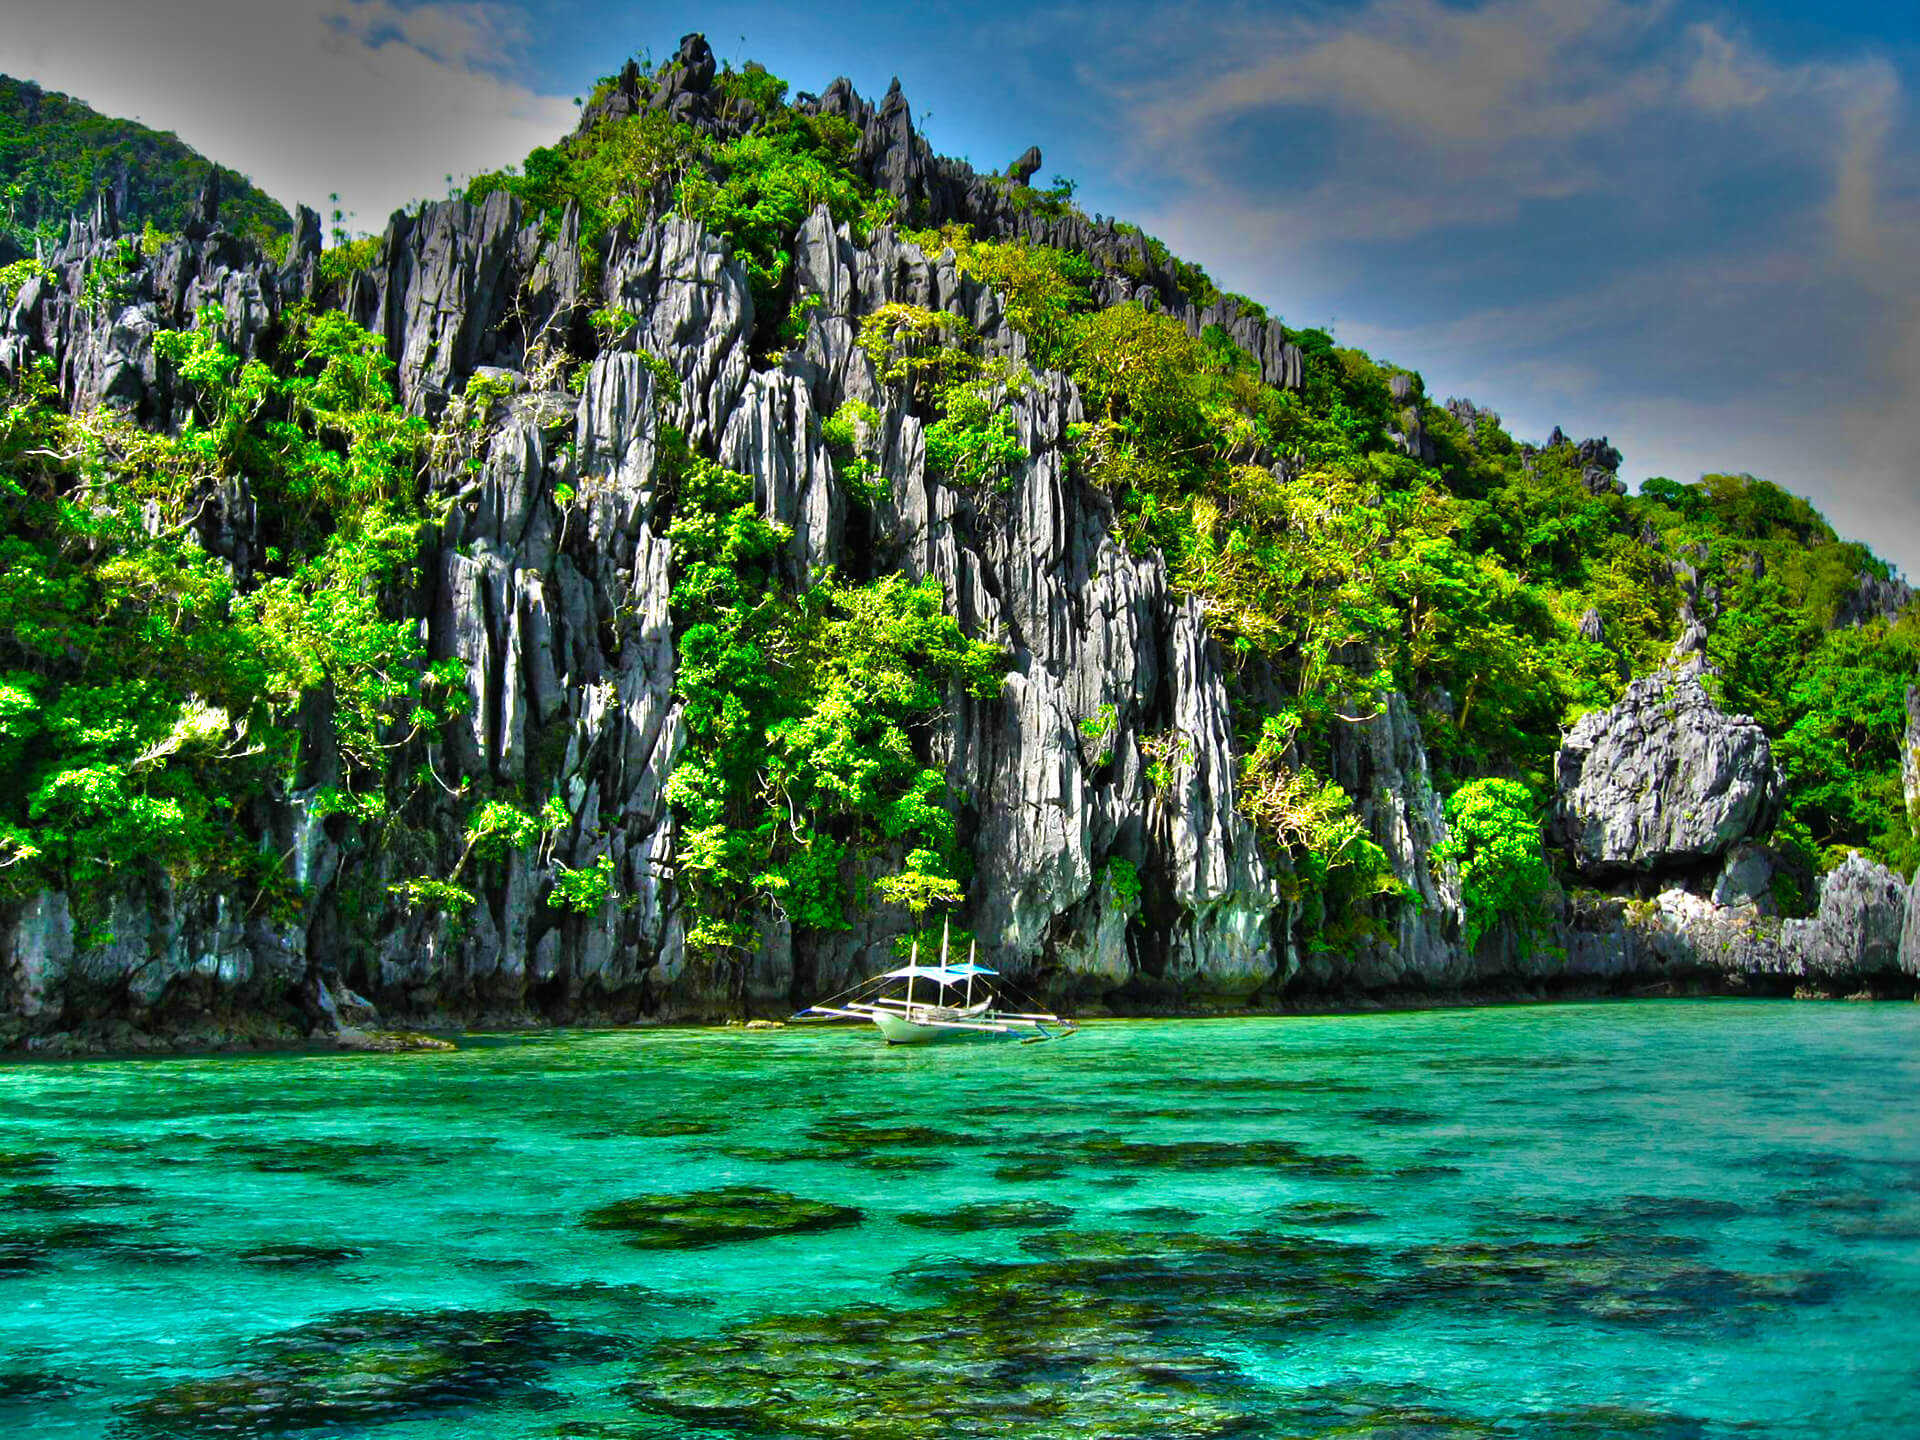 Philippines wallpapers hd full hd pictures for Wallpaper home philippines